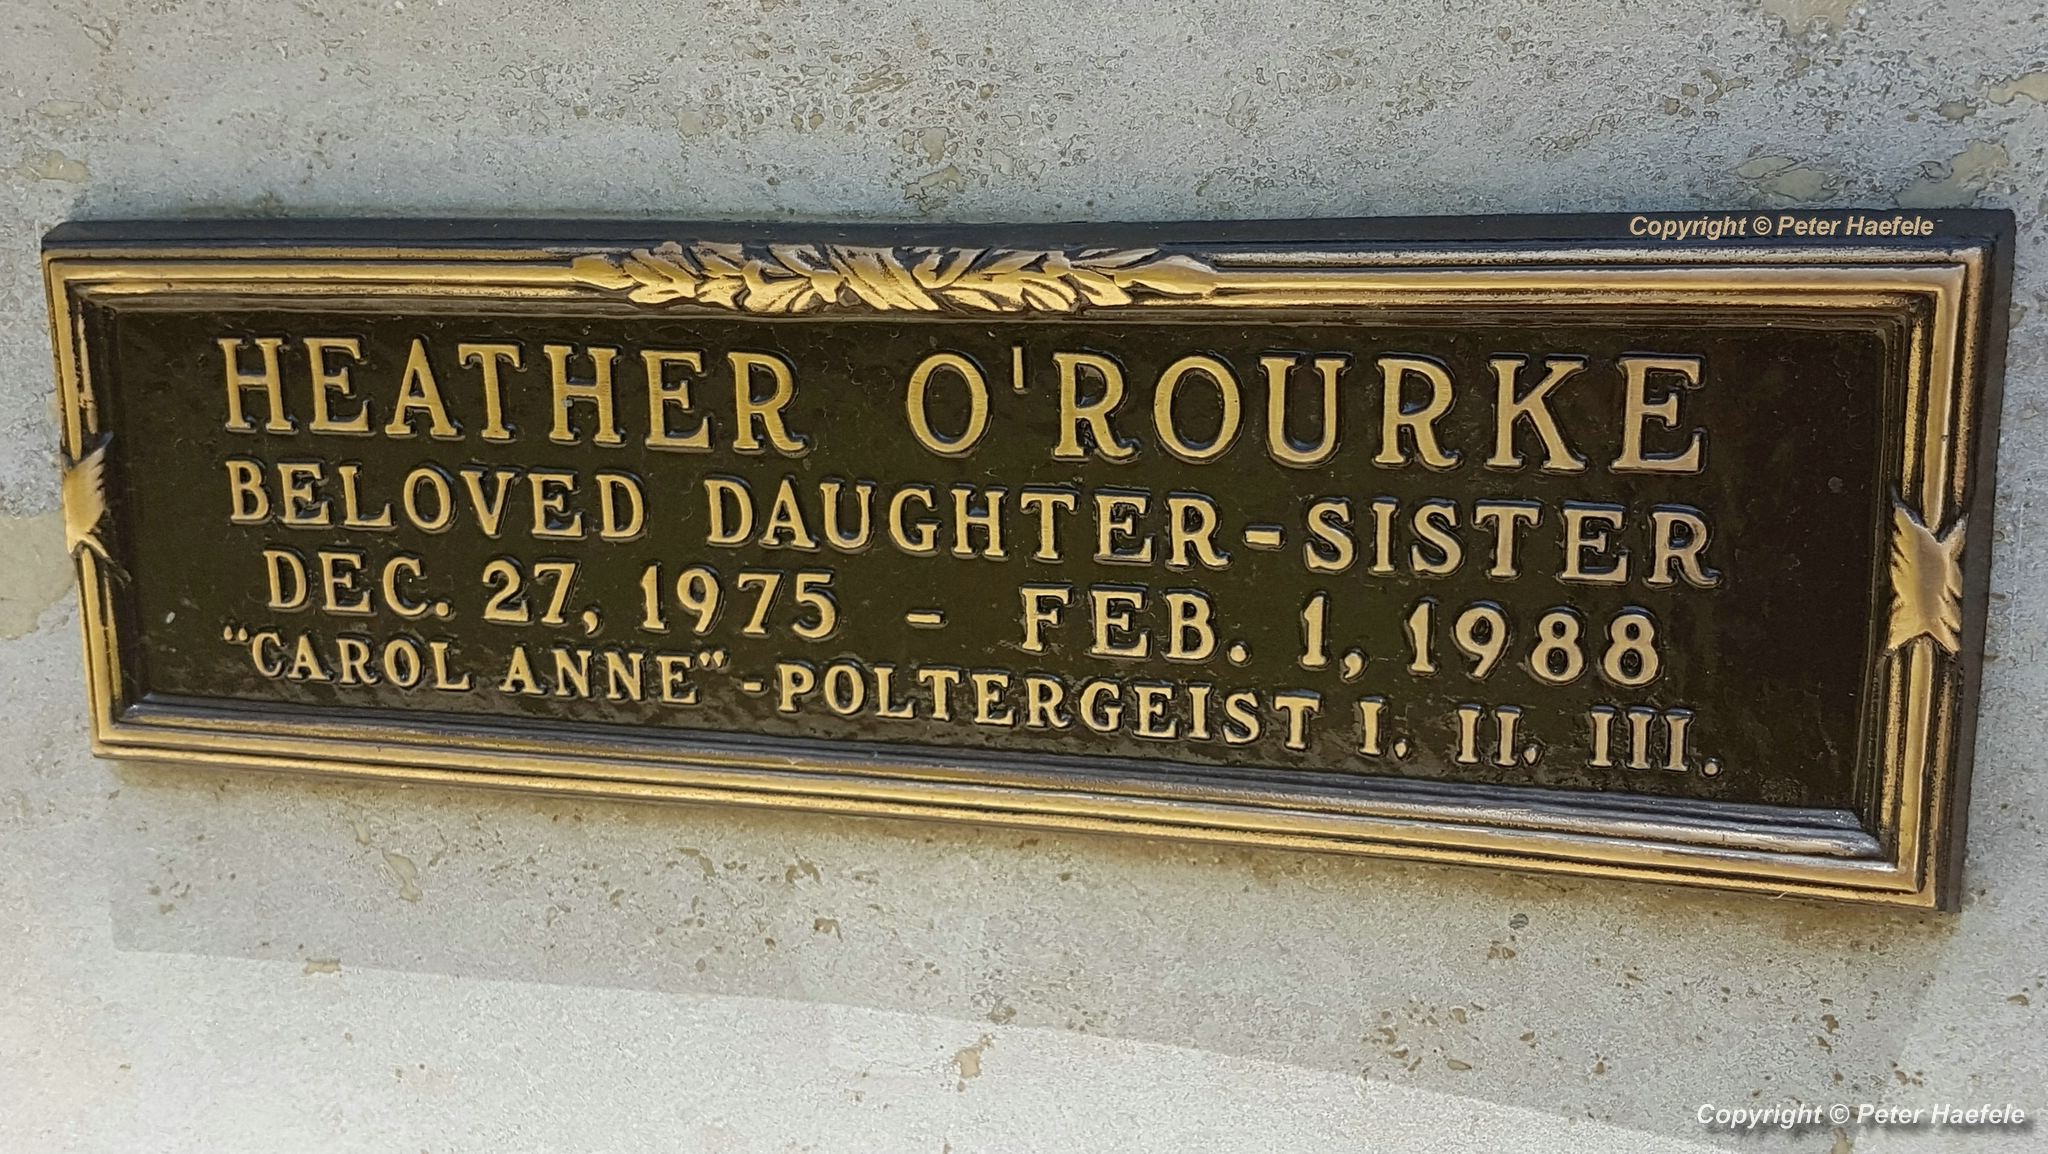 Roadtrip USA - Westwood Village Memorial Park Cemetery - Grave of Heather ORourke - Poltergeist